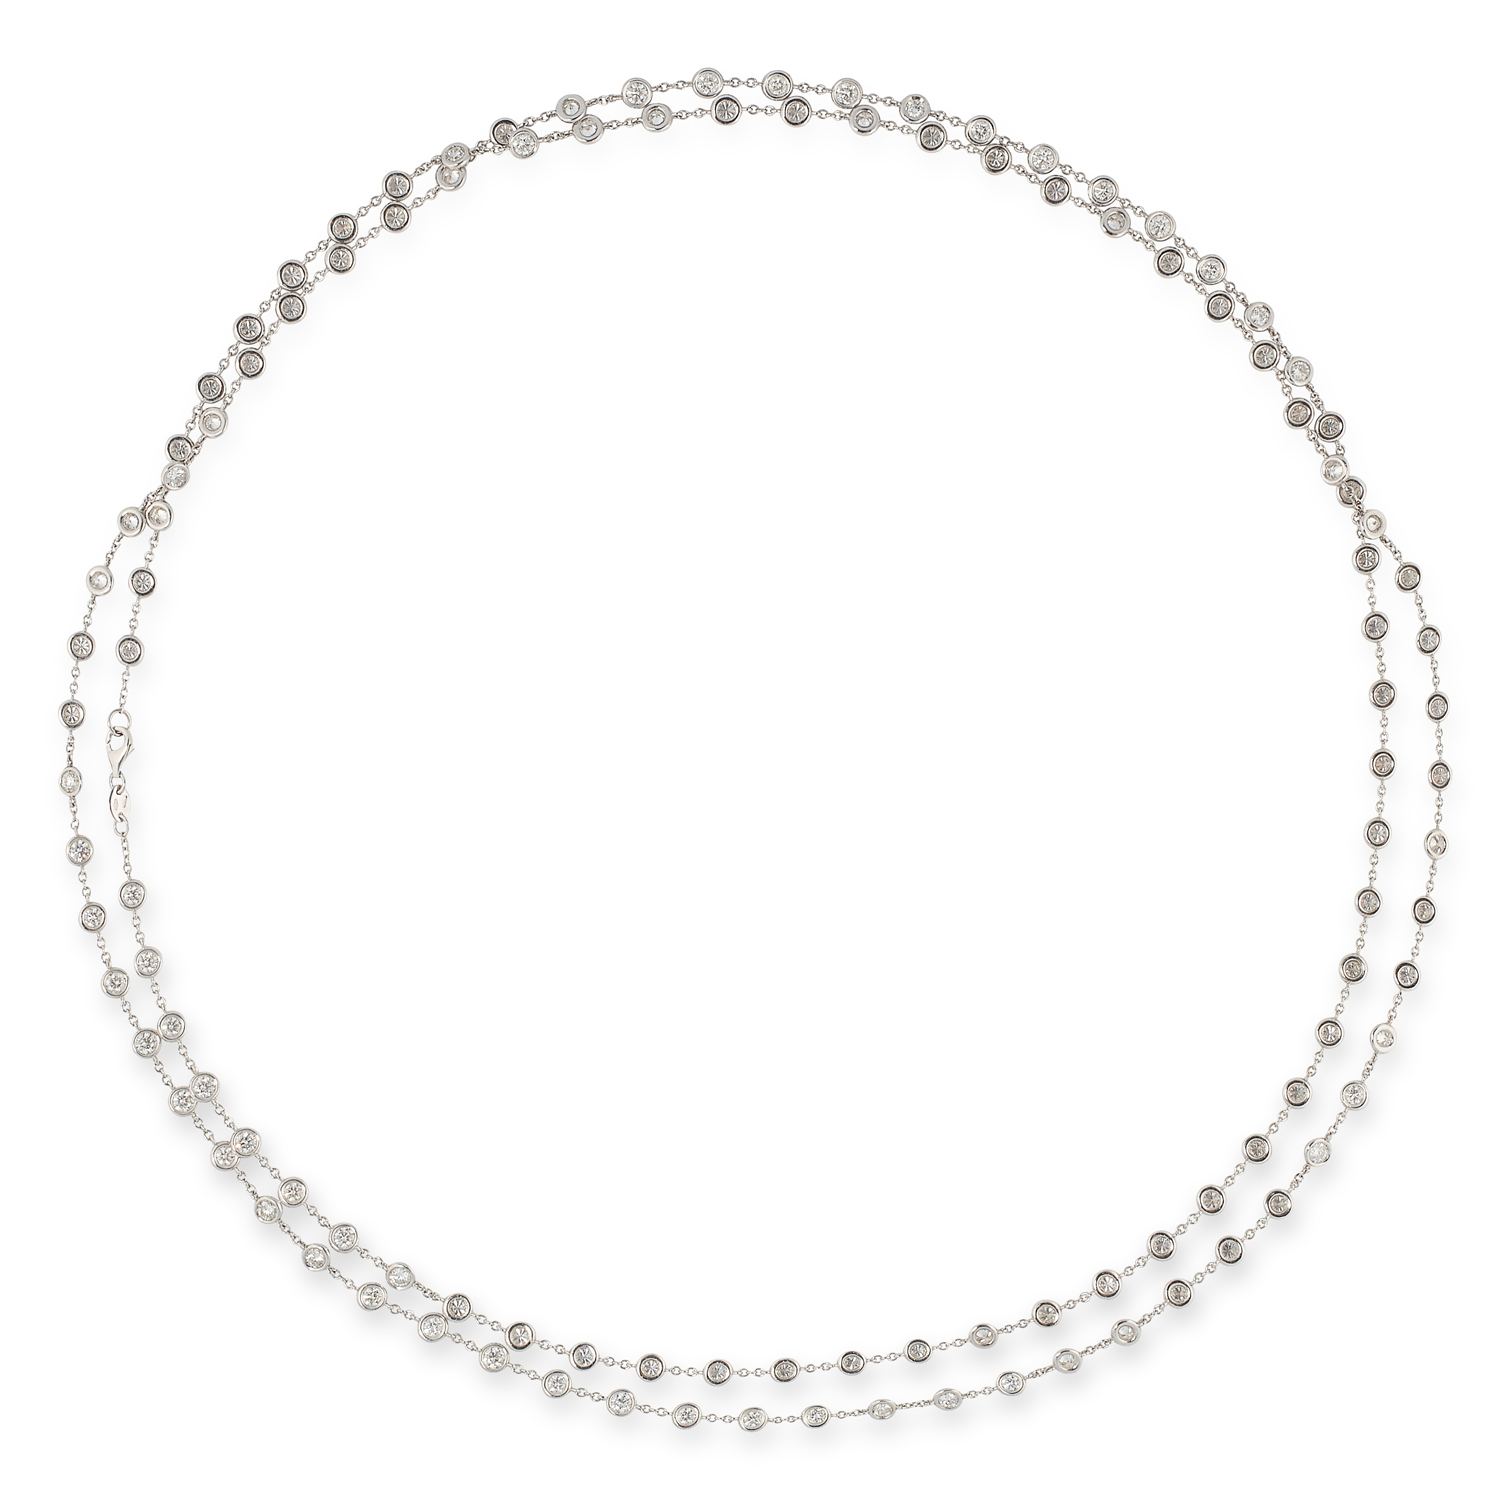 A DIAMOND LONG CHAIN SAUTOIR NECKLACE in the manne